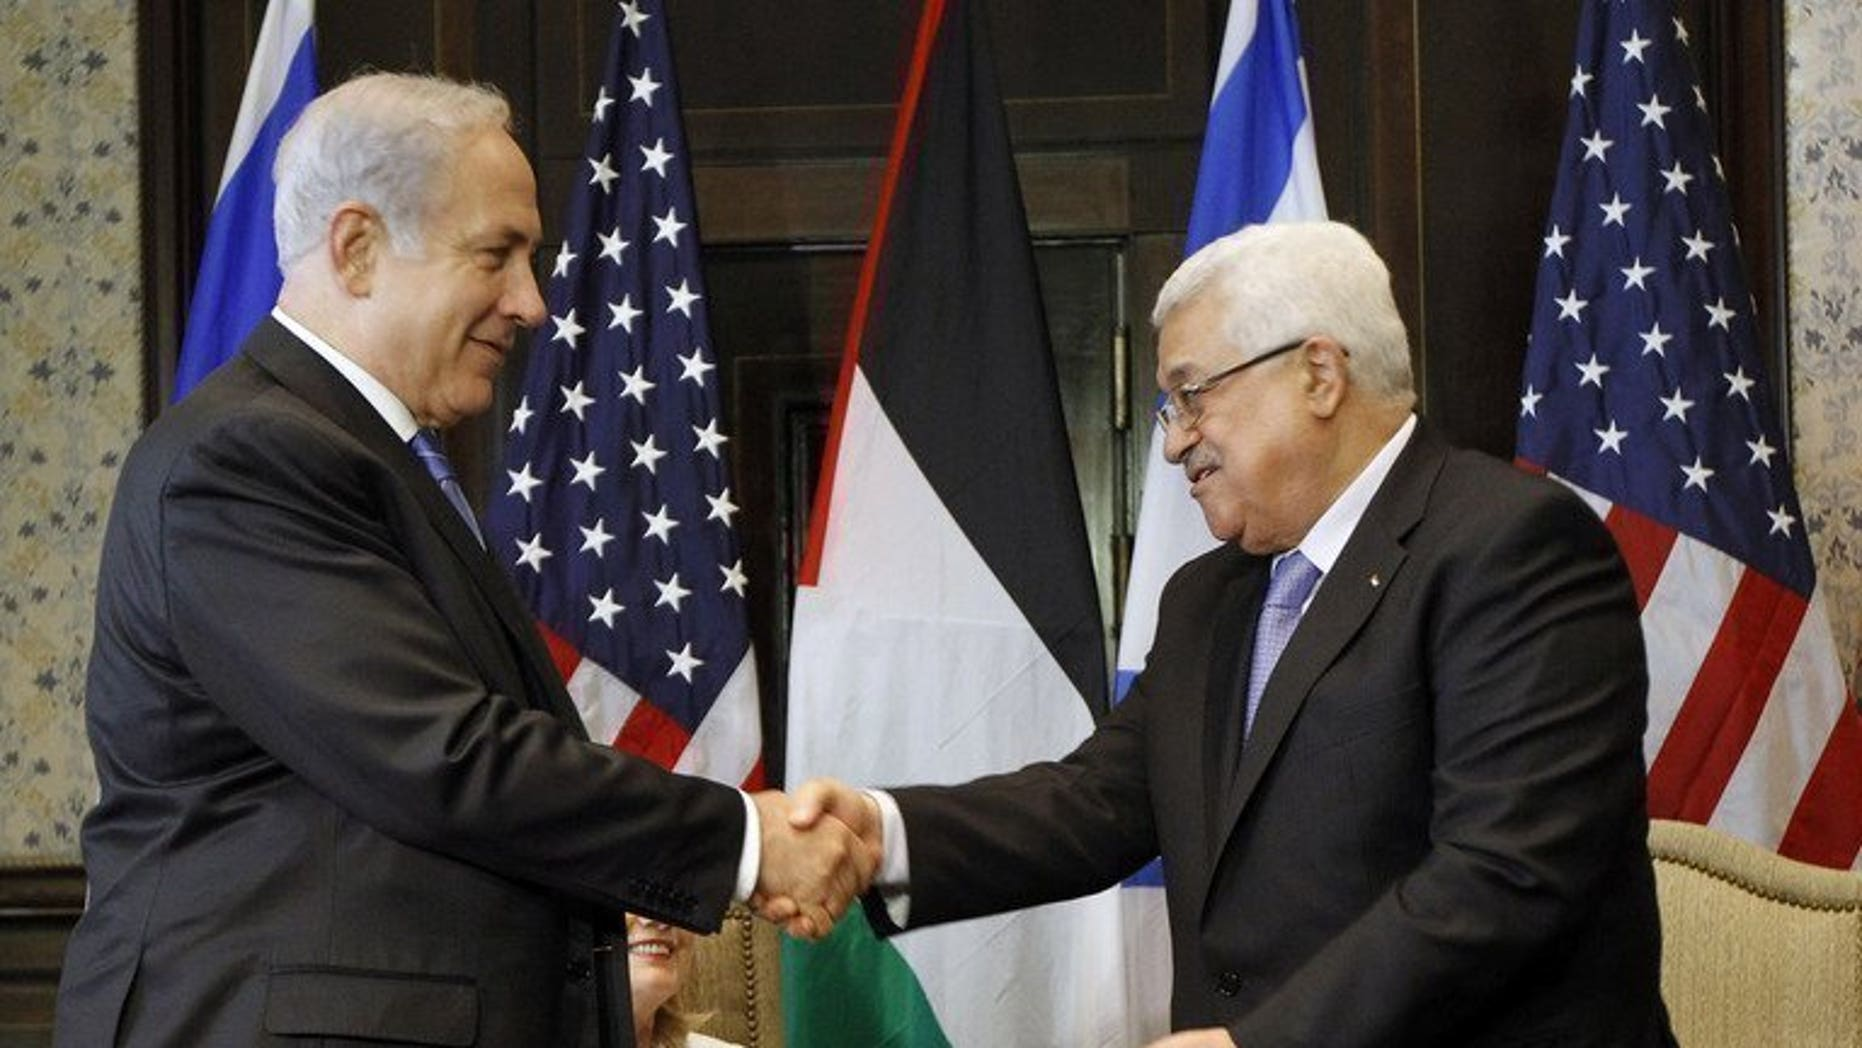 Israeli Prime Minister Benjamin Netanyahu (left) shakes hands with Palestinian president Mahmud Abbas during talks in Sharm El-Sheikh, on September 14, 2010. Middle East peace talks, which resumed in Washington after a three-year break are doomed to fail, Palestinian analysts said after negotiators set a nine-month target for an agreement.